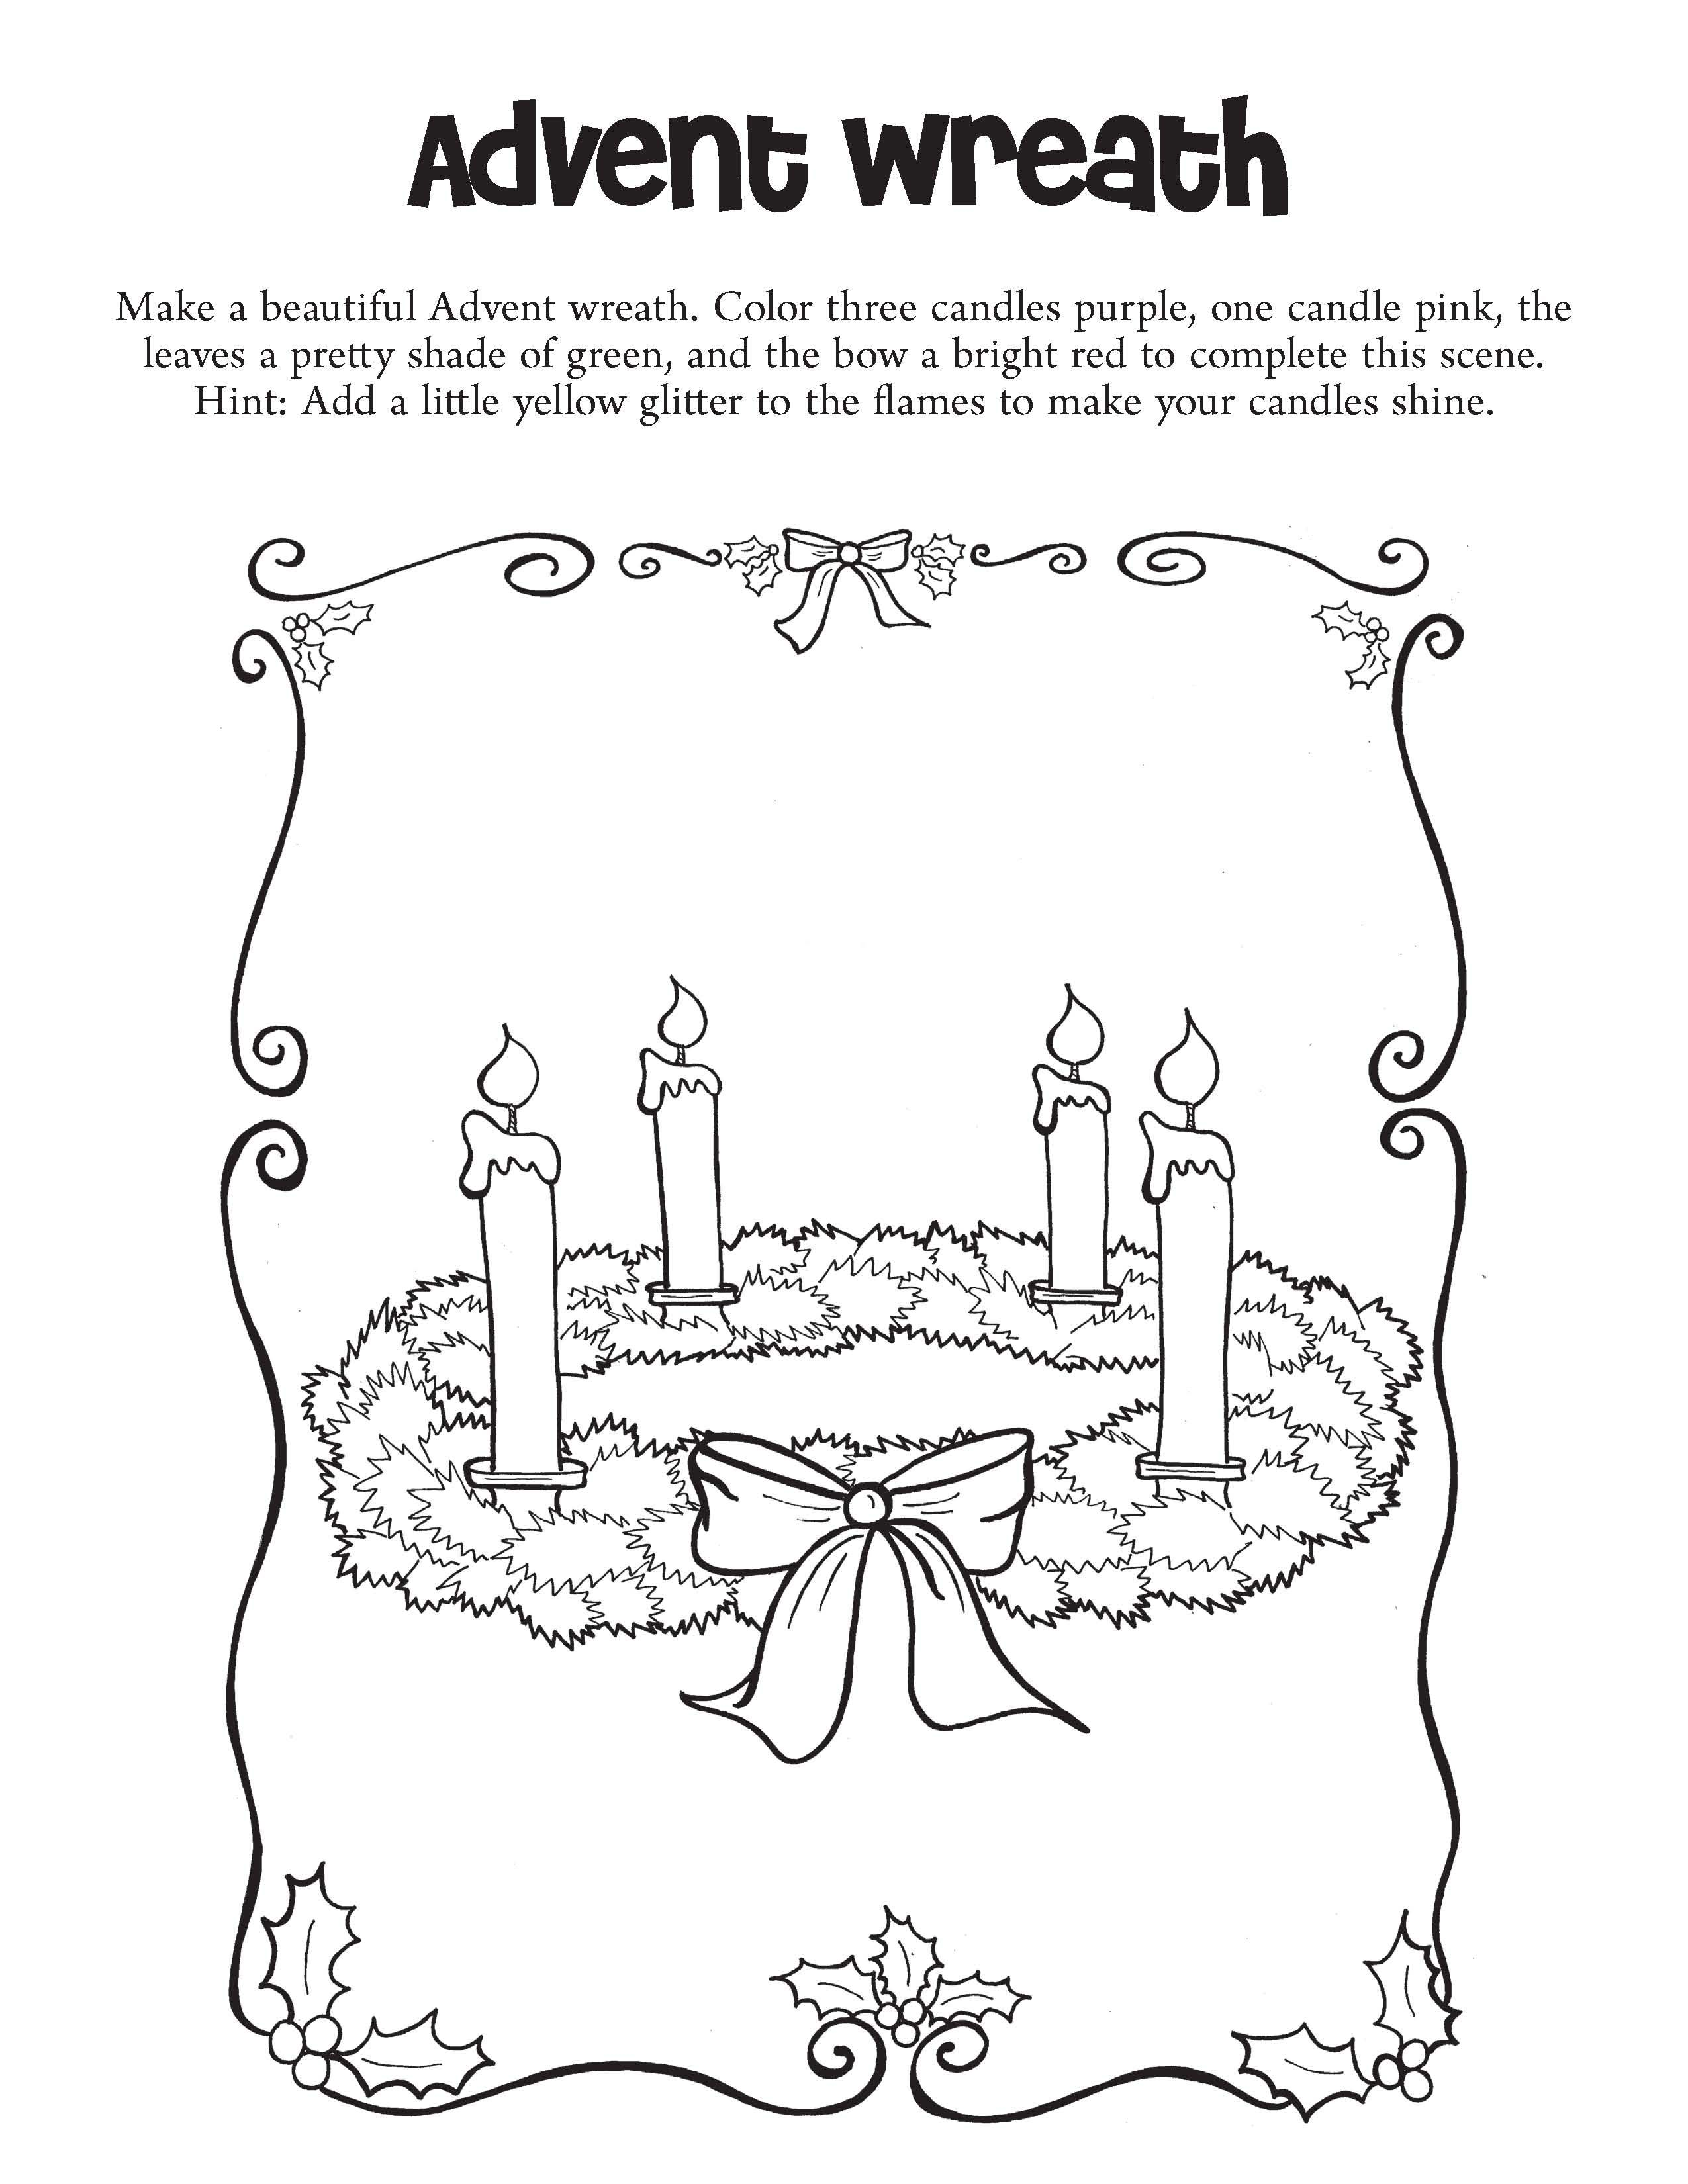 Advent wreath coloring sheet   Christmas Advent Activities ...